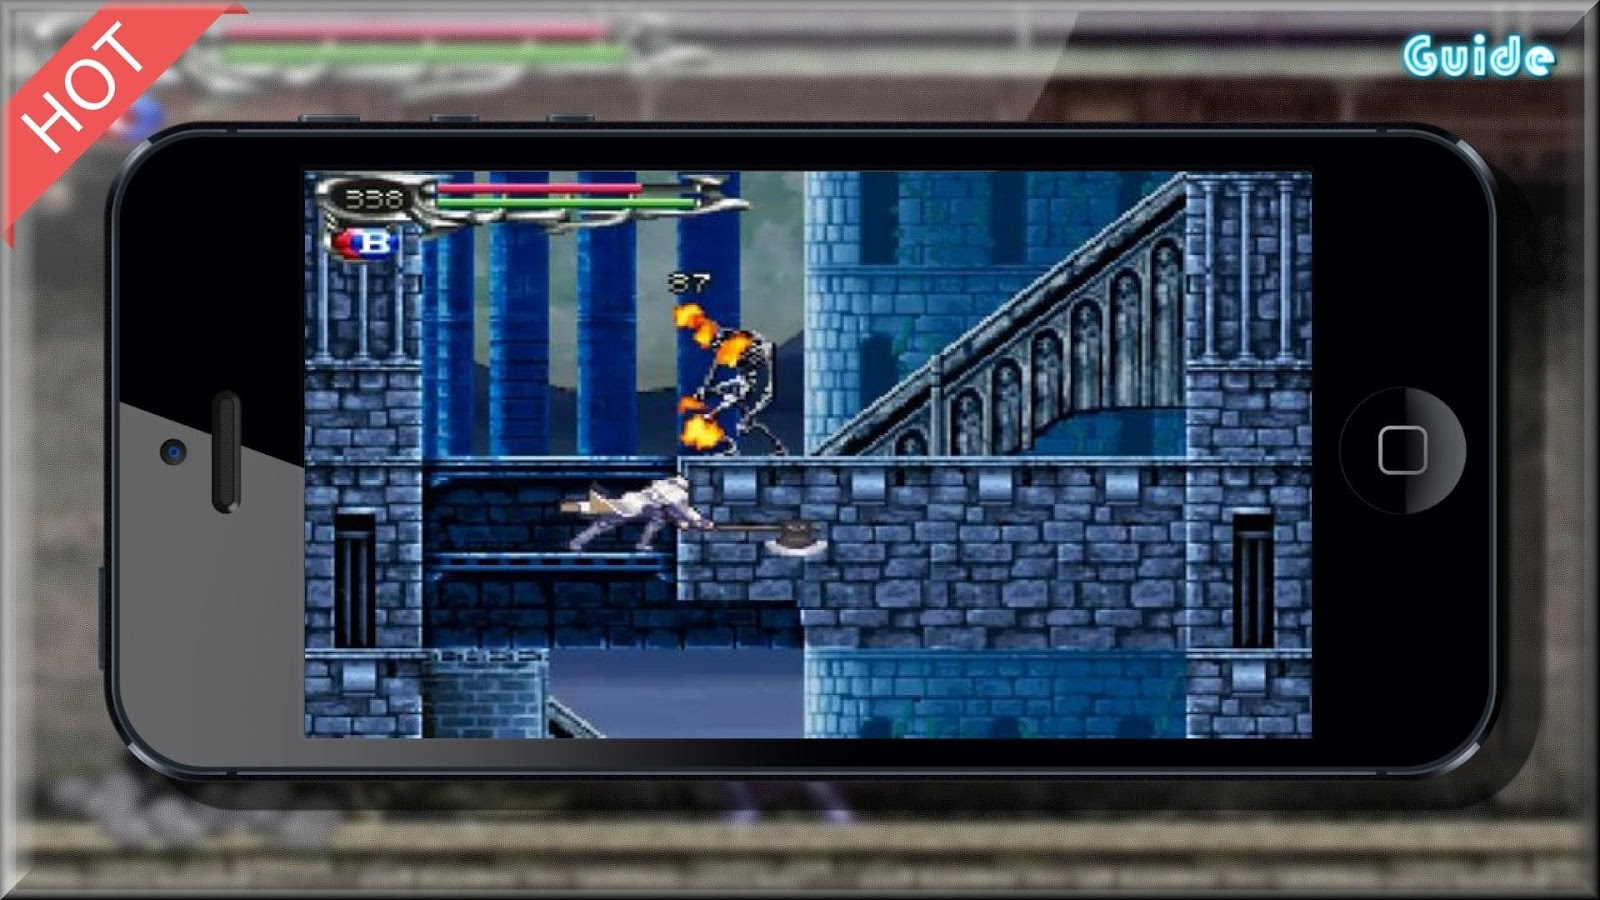 guide castlevania dawn of sorrow 1 0 APK Download - Android Books